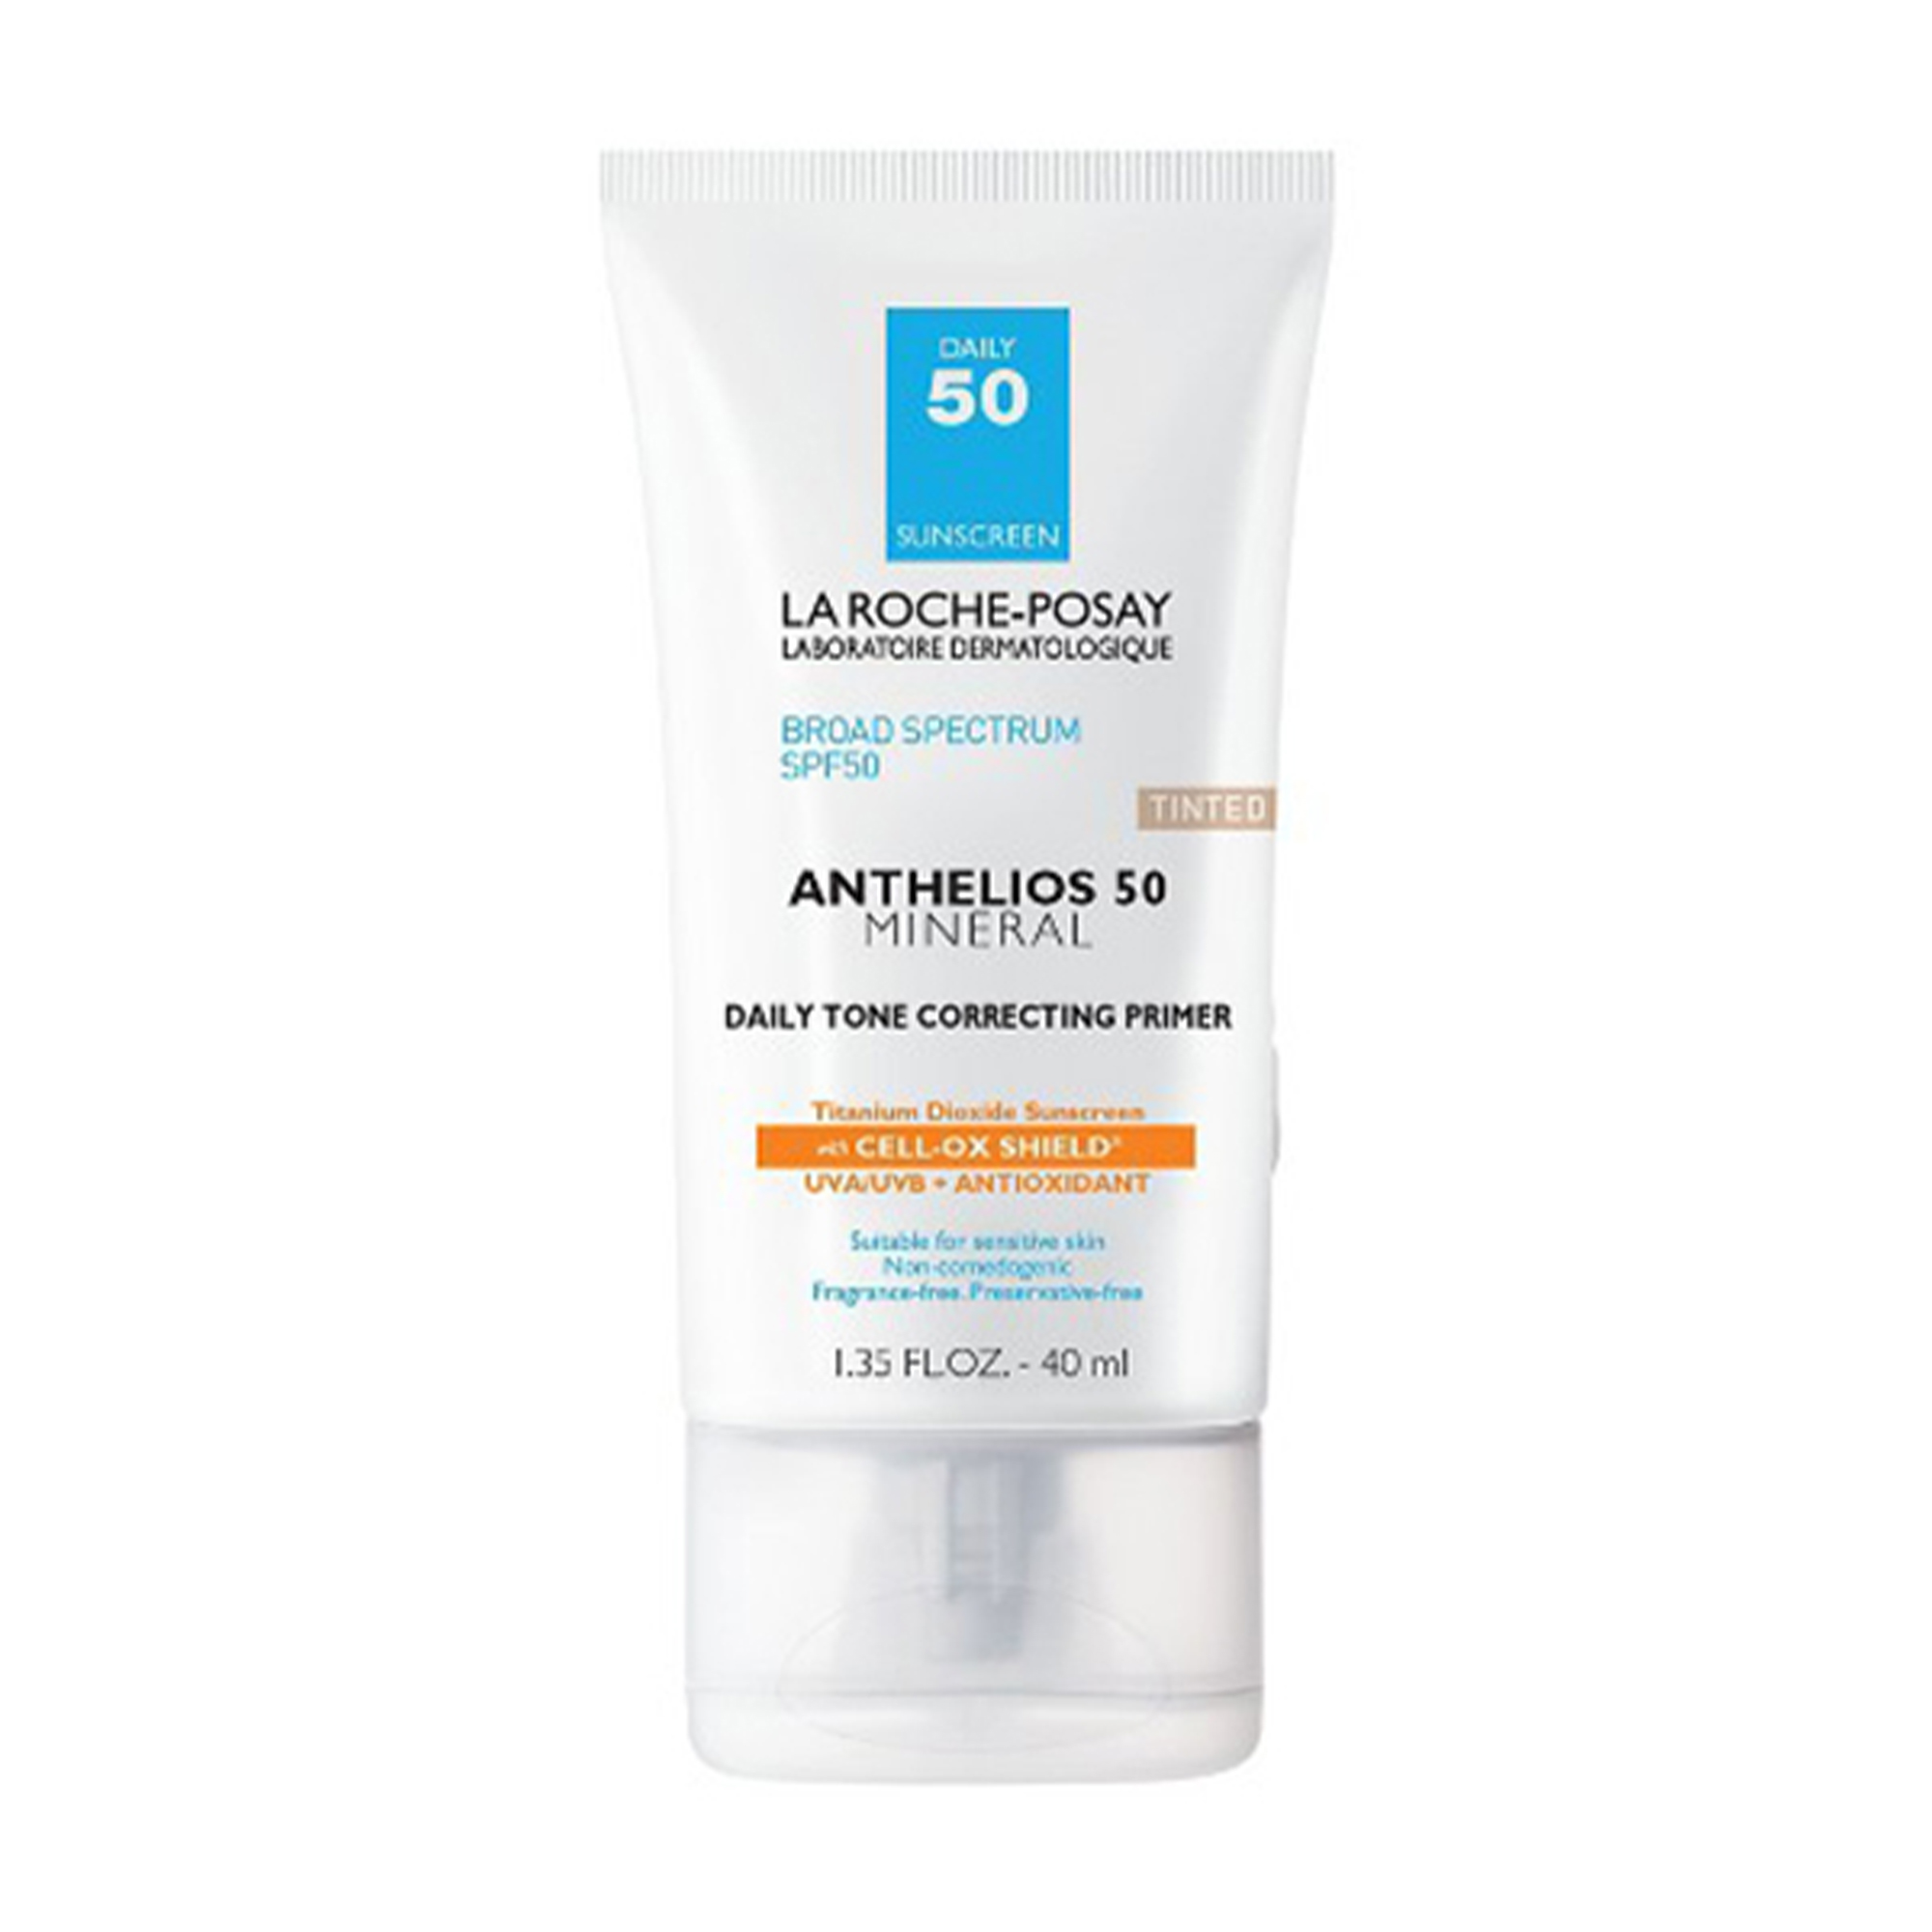 La Roche Posay Anthelios 50 Mineral Tinted Daily Tone Correcting Primer with Sunscreen